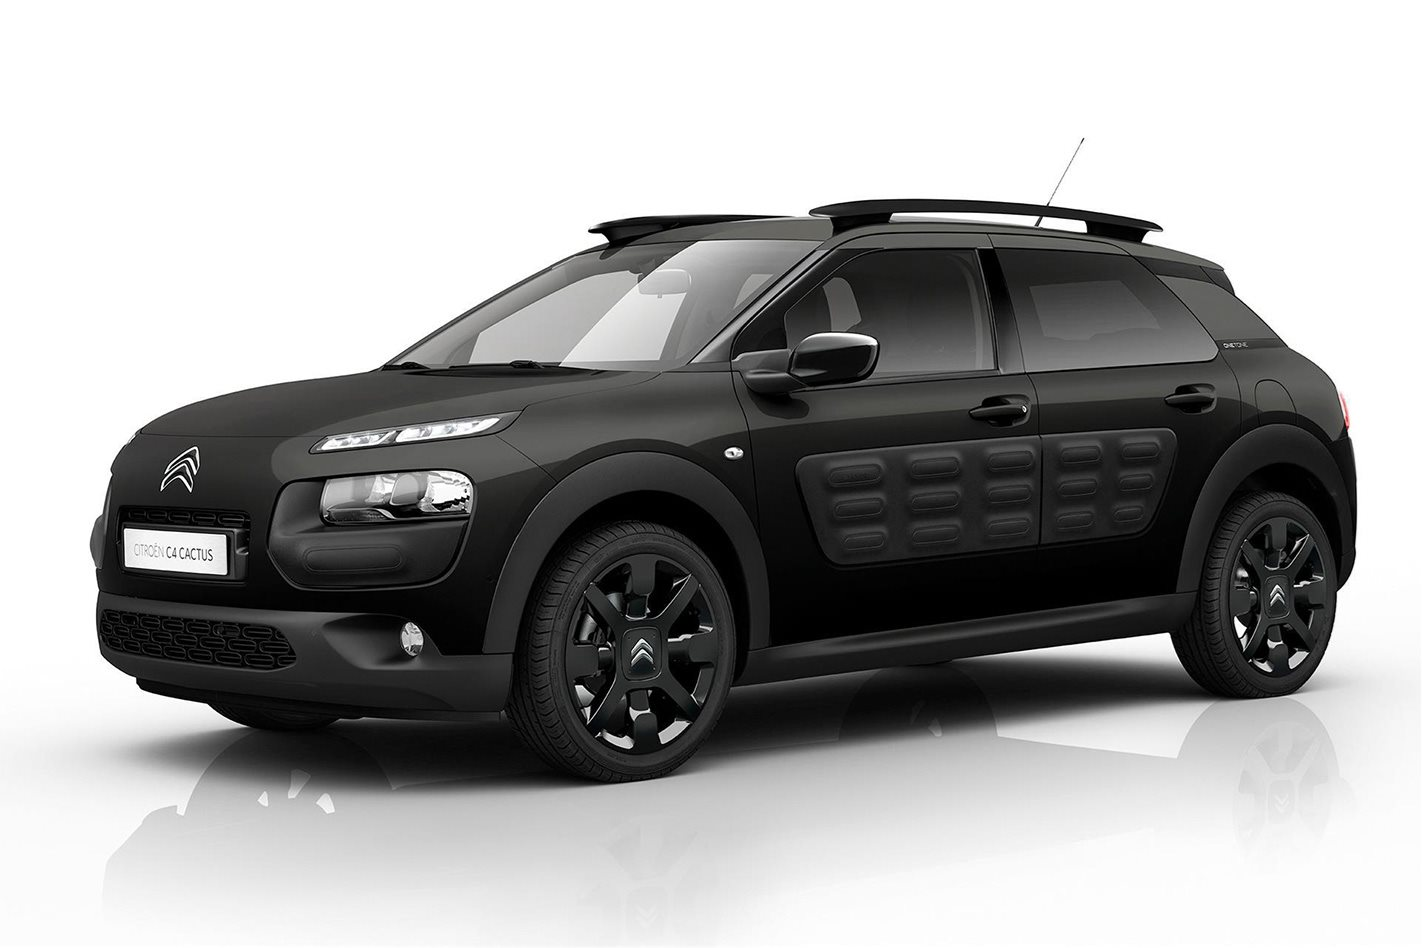 2018 citroen c4 cactus becomes less oddball with range rejig. Black Bedroom Furniture Sets. Home Design Ideas